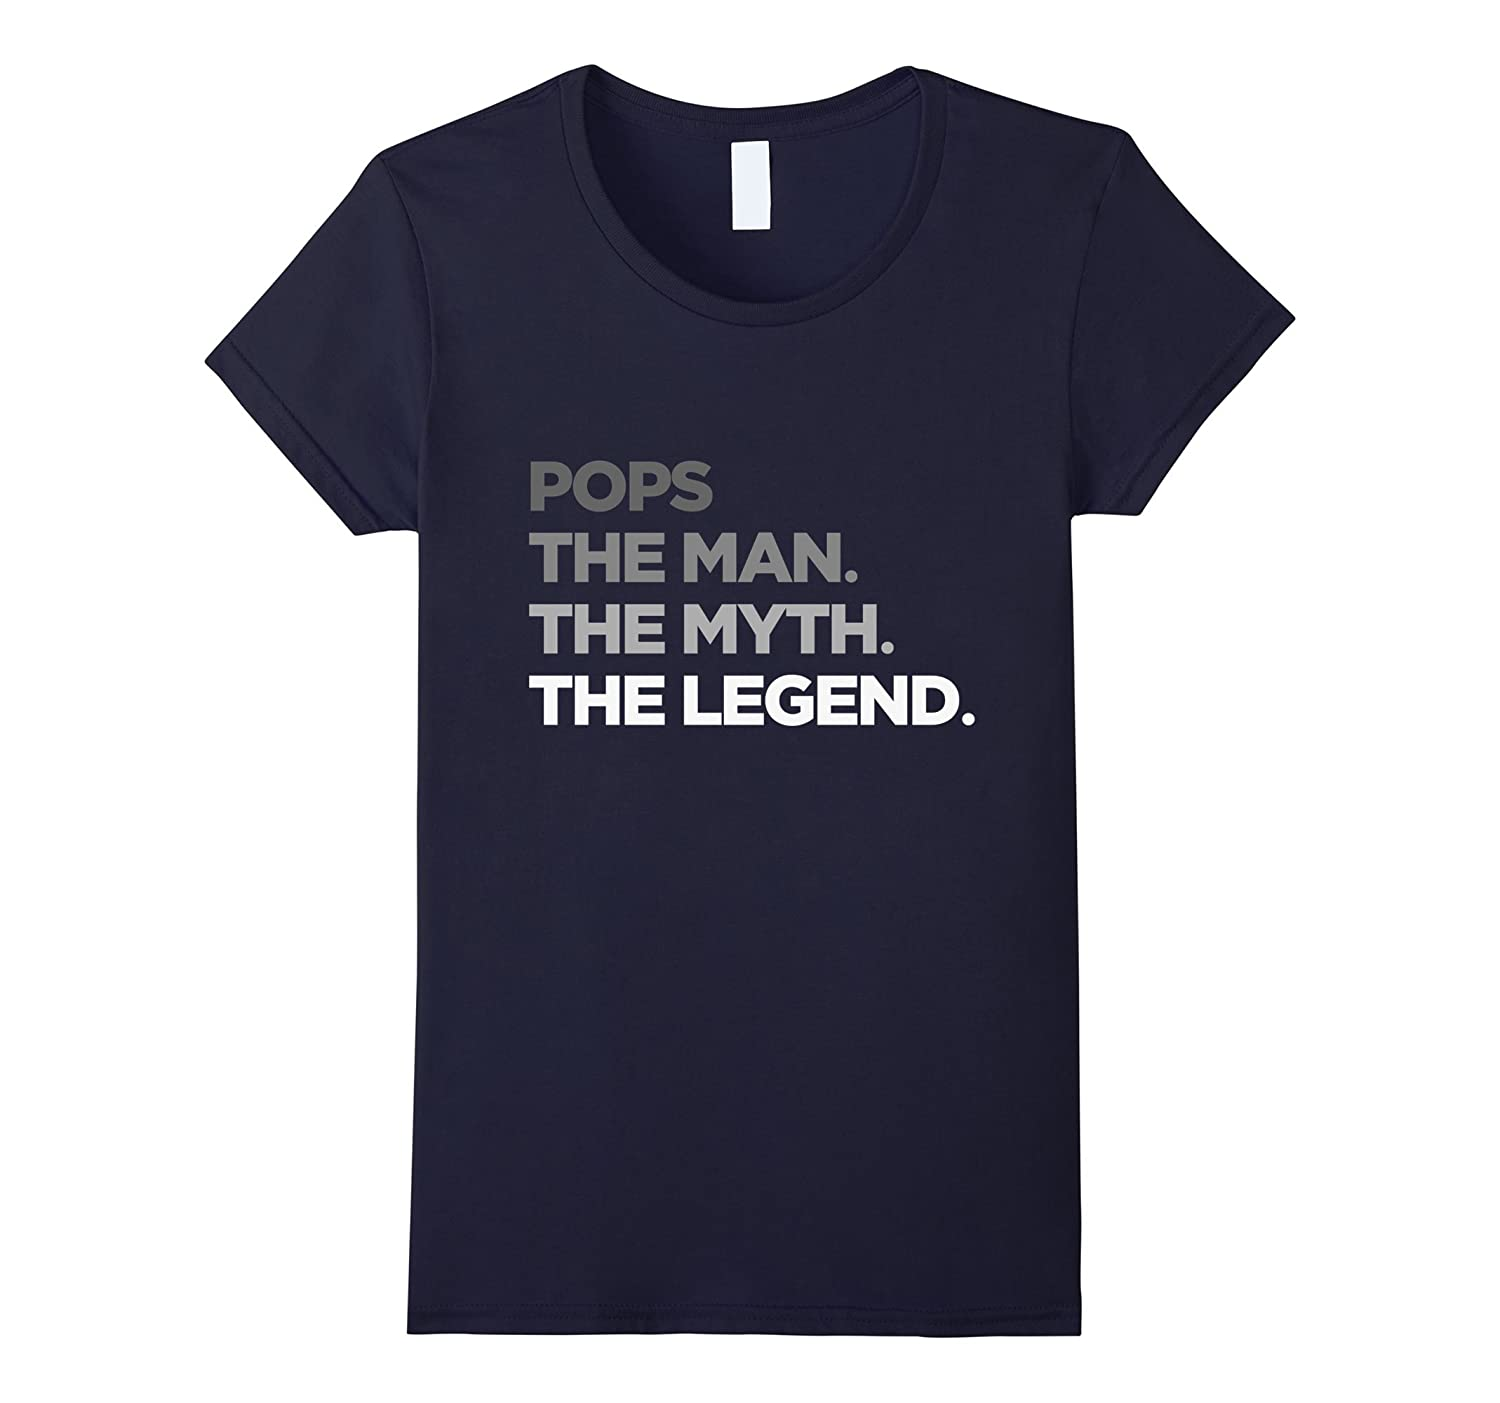 Pops The Man The Myth The Legend T Shirt, Tshirts for Dad